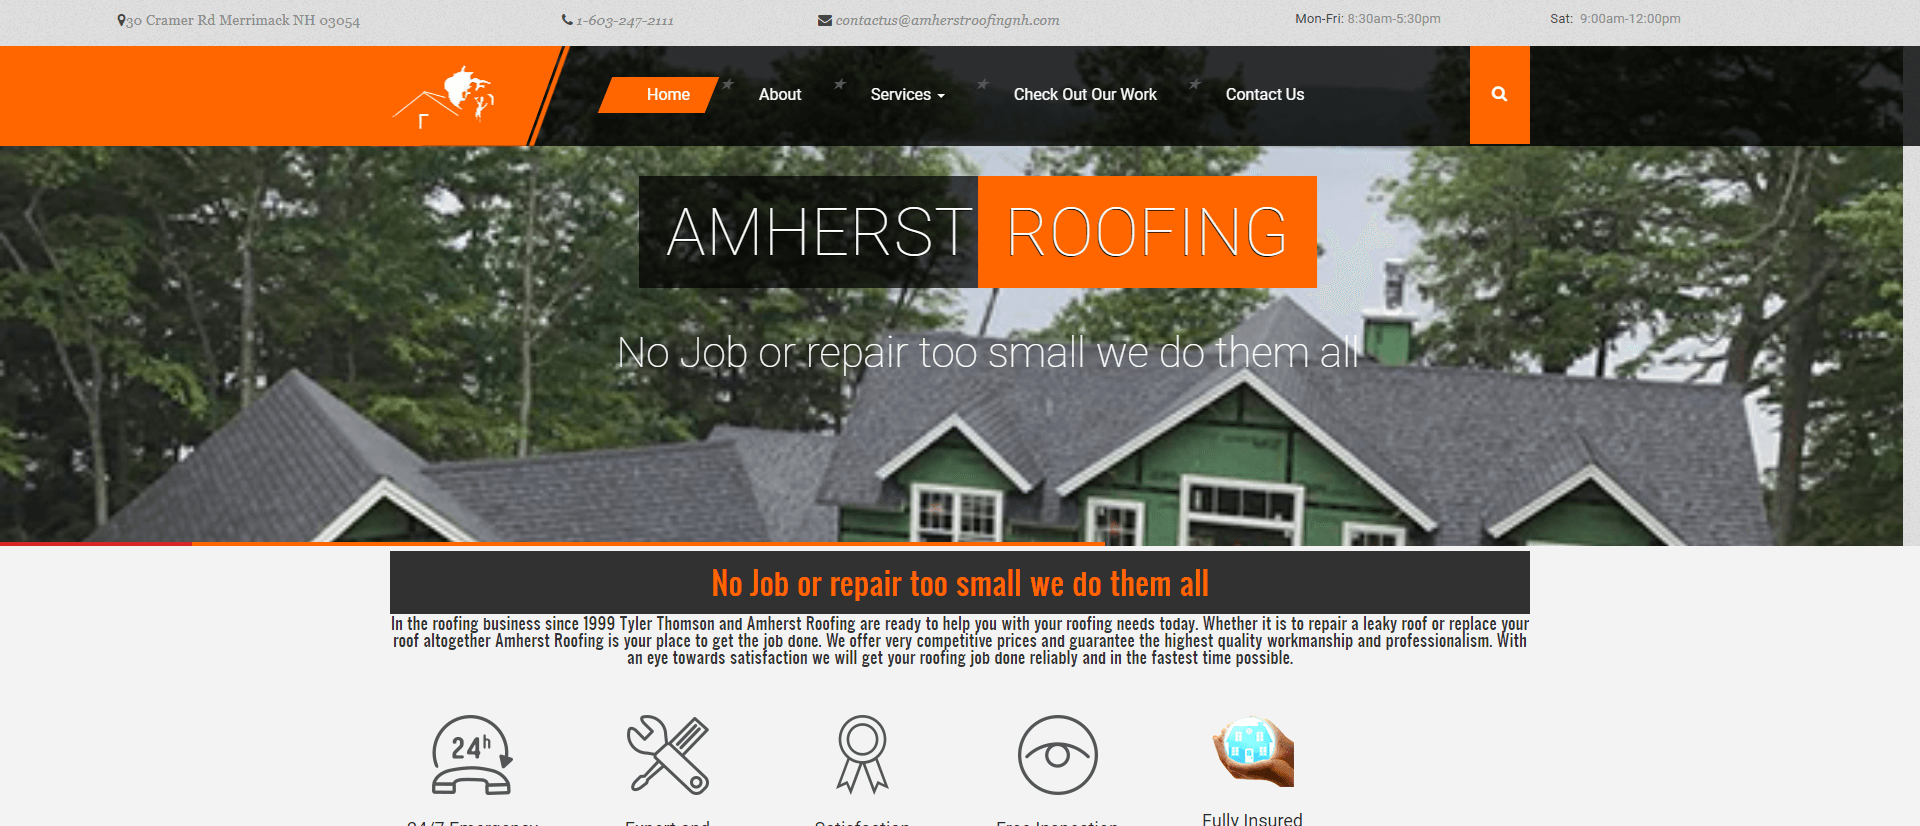 Amherst Roofing